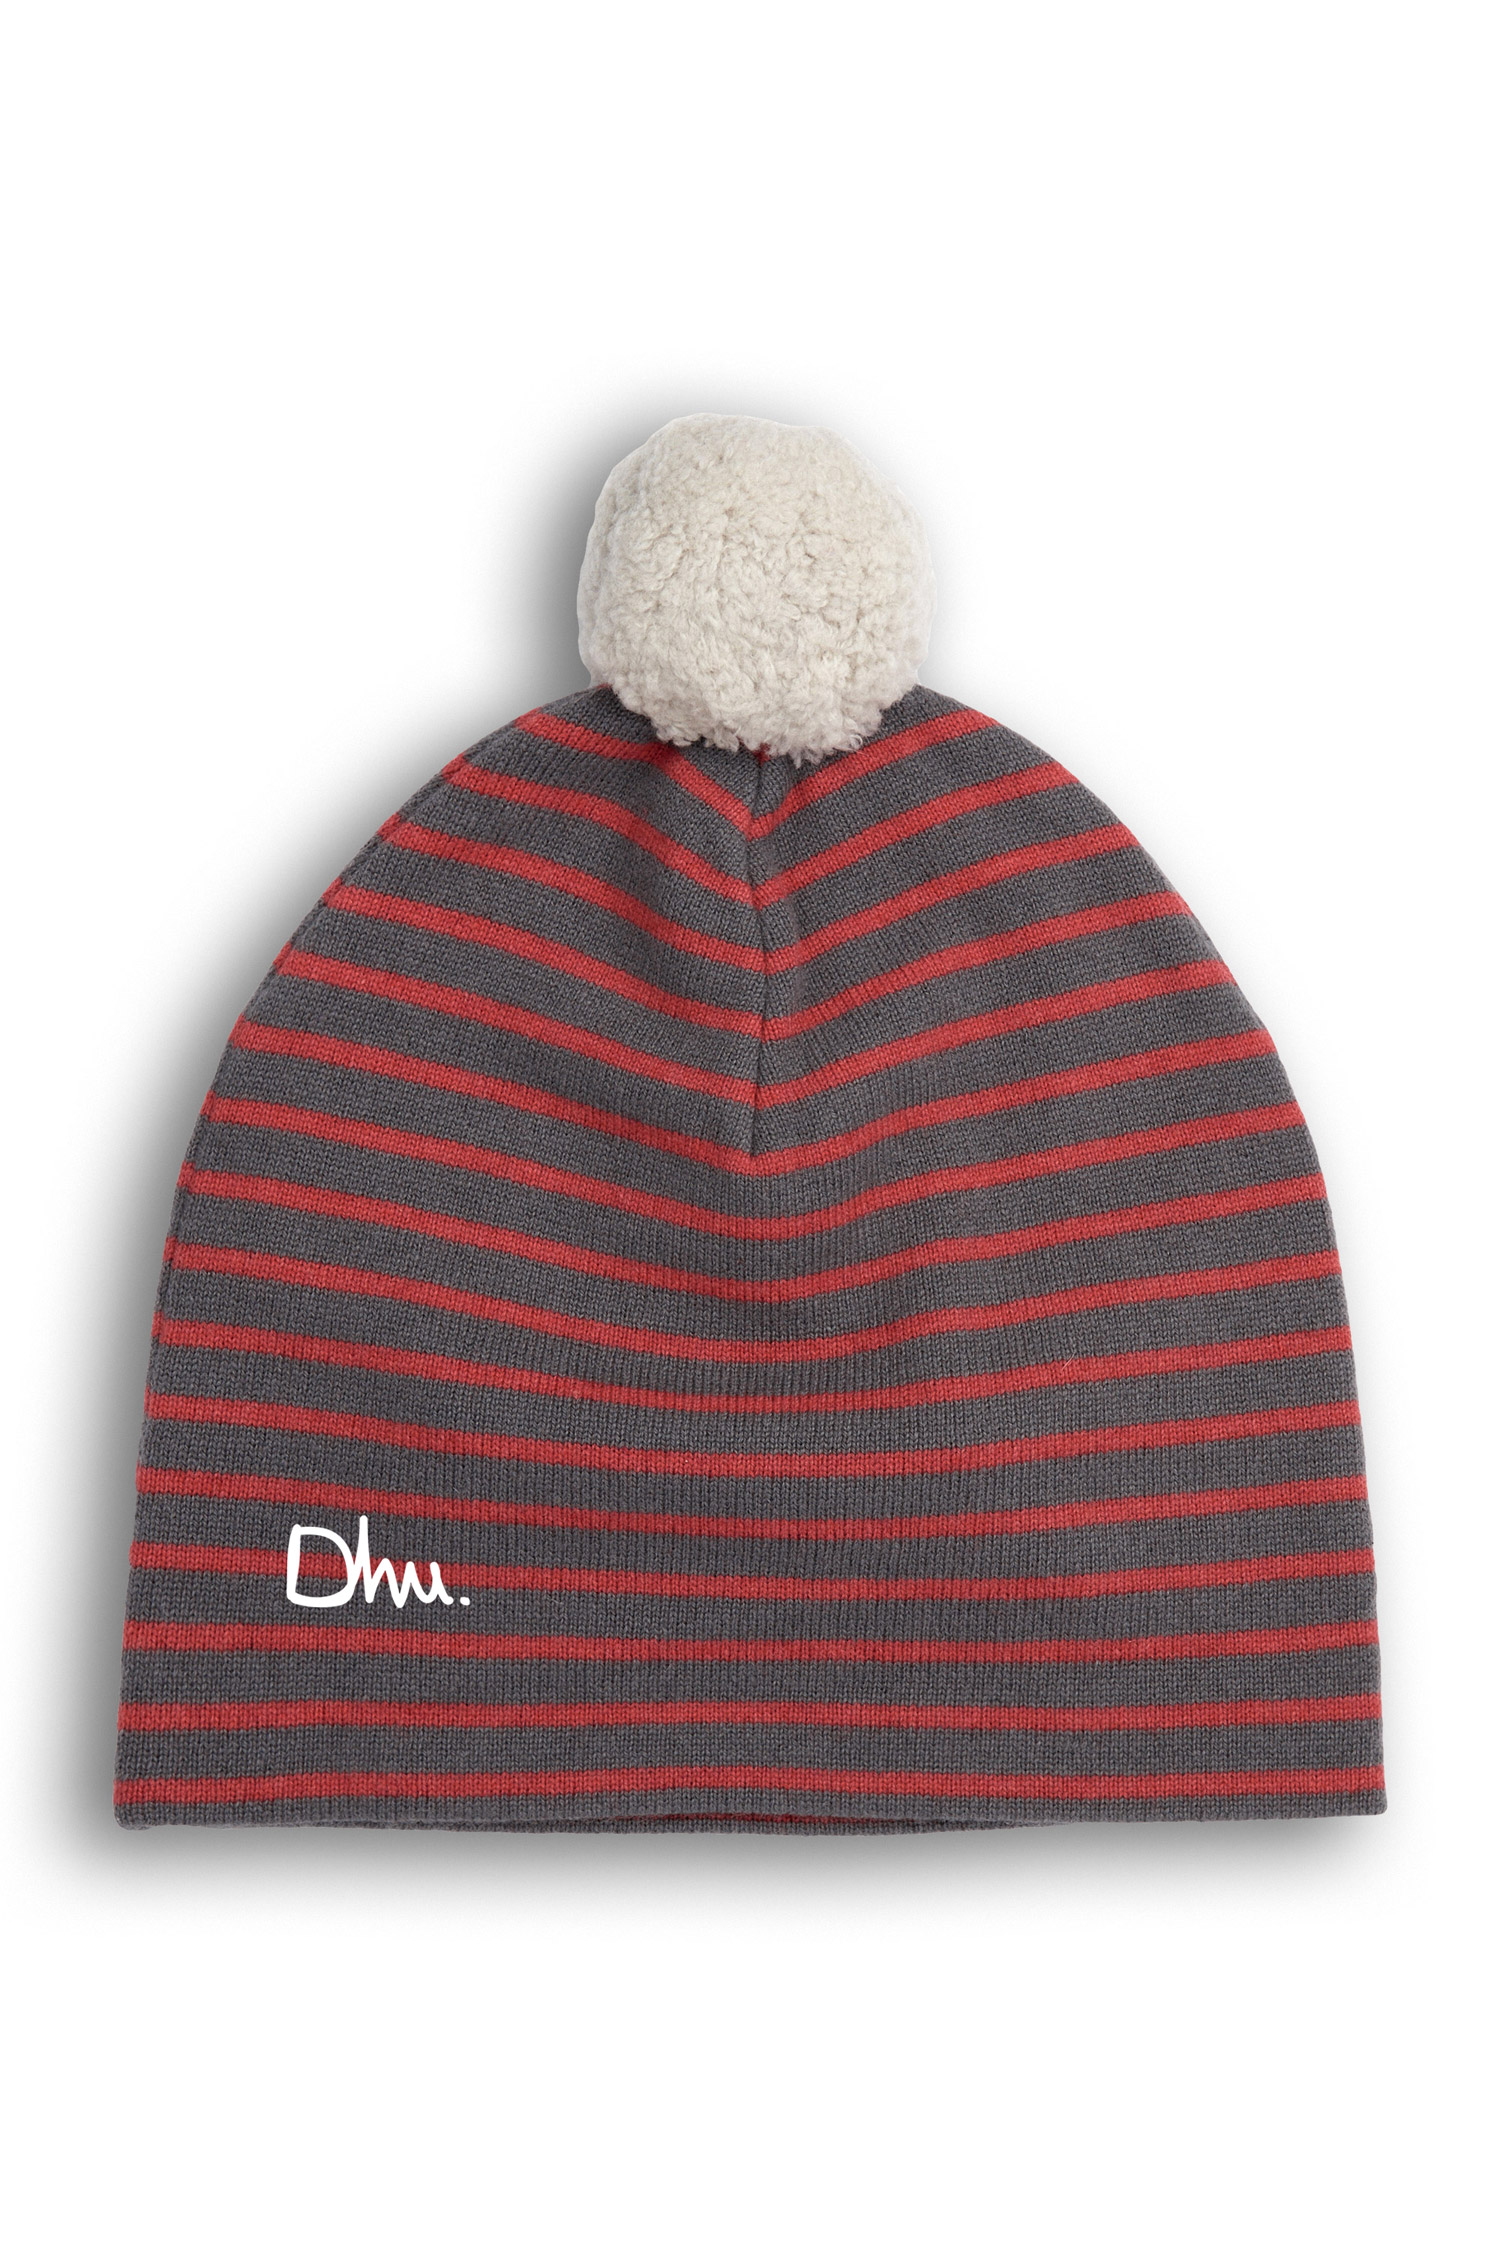 LoudElephant Chunky Wool Cable Knit Big Baggy Slouch · Dome Stripe Bobble  Hat Dhu d1ab572c2967